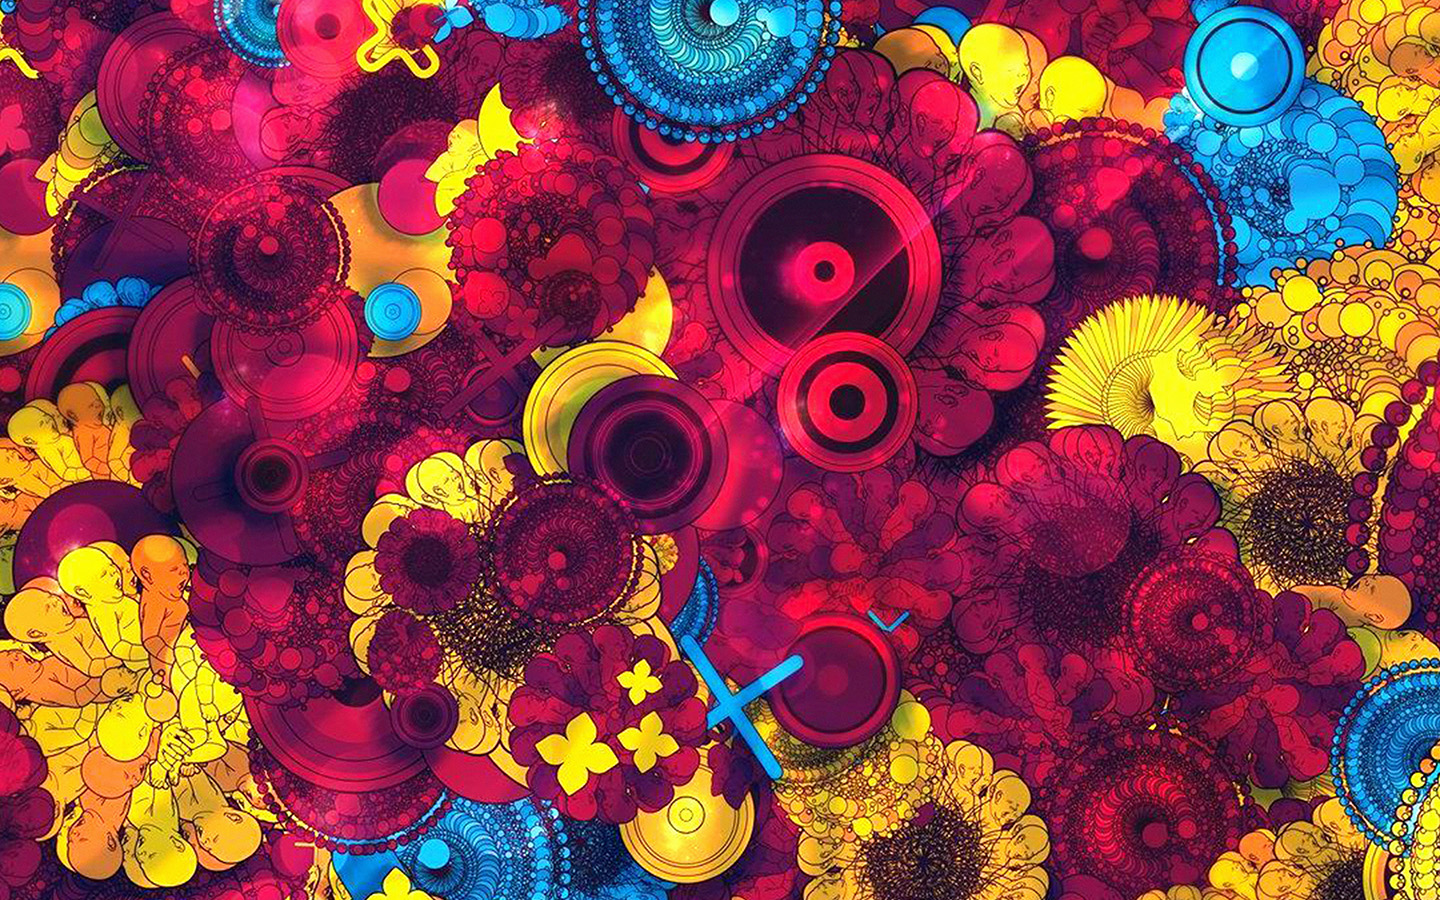 vq58-abstract-art-red-blue-yellow-color-pattern-wallpaper